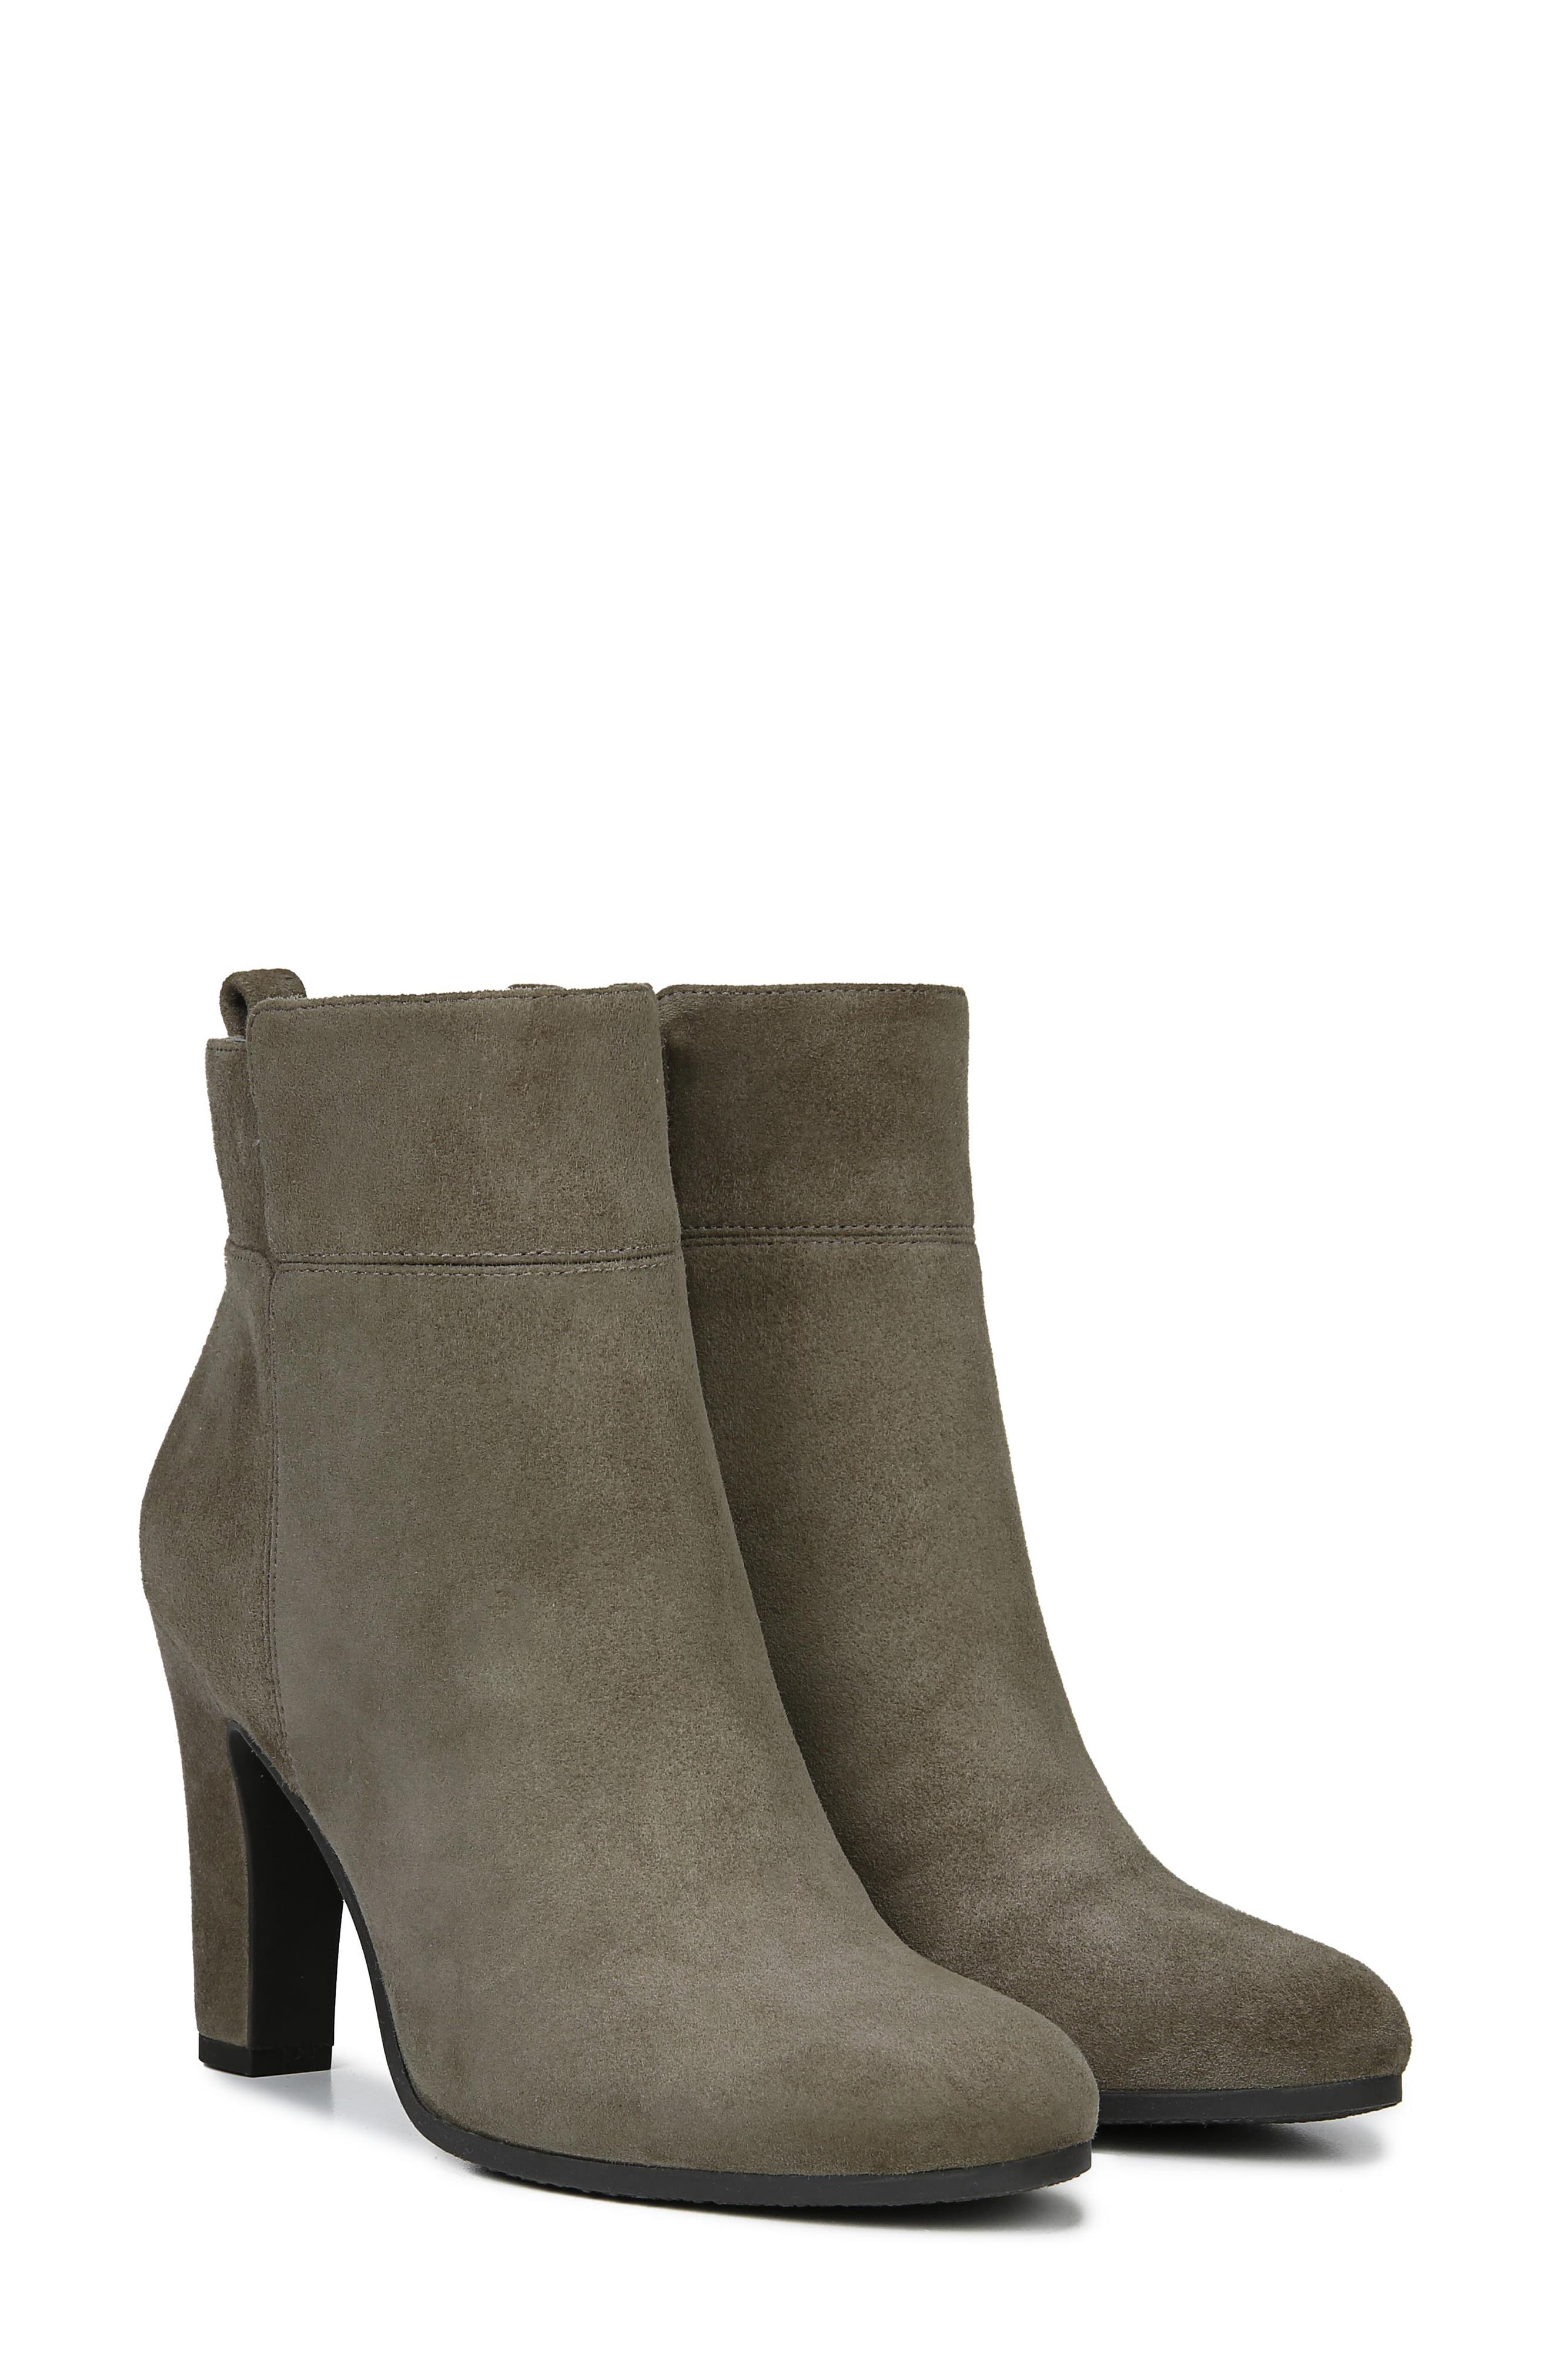 Sianna Bootie,                             Alternate thumbnail 8, color,                             FLINT GREY SUEDE